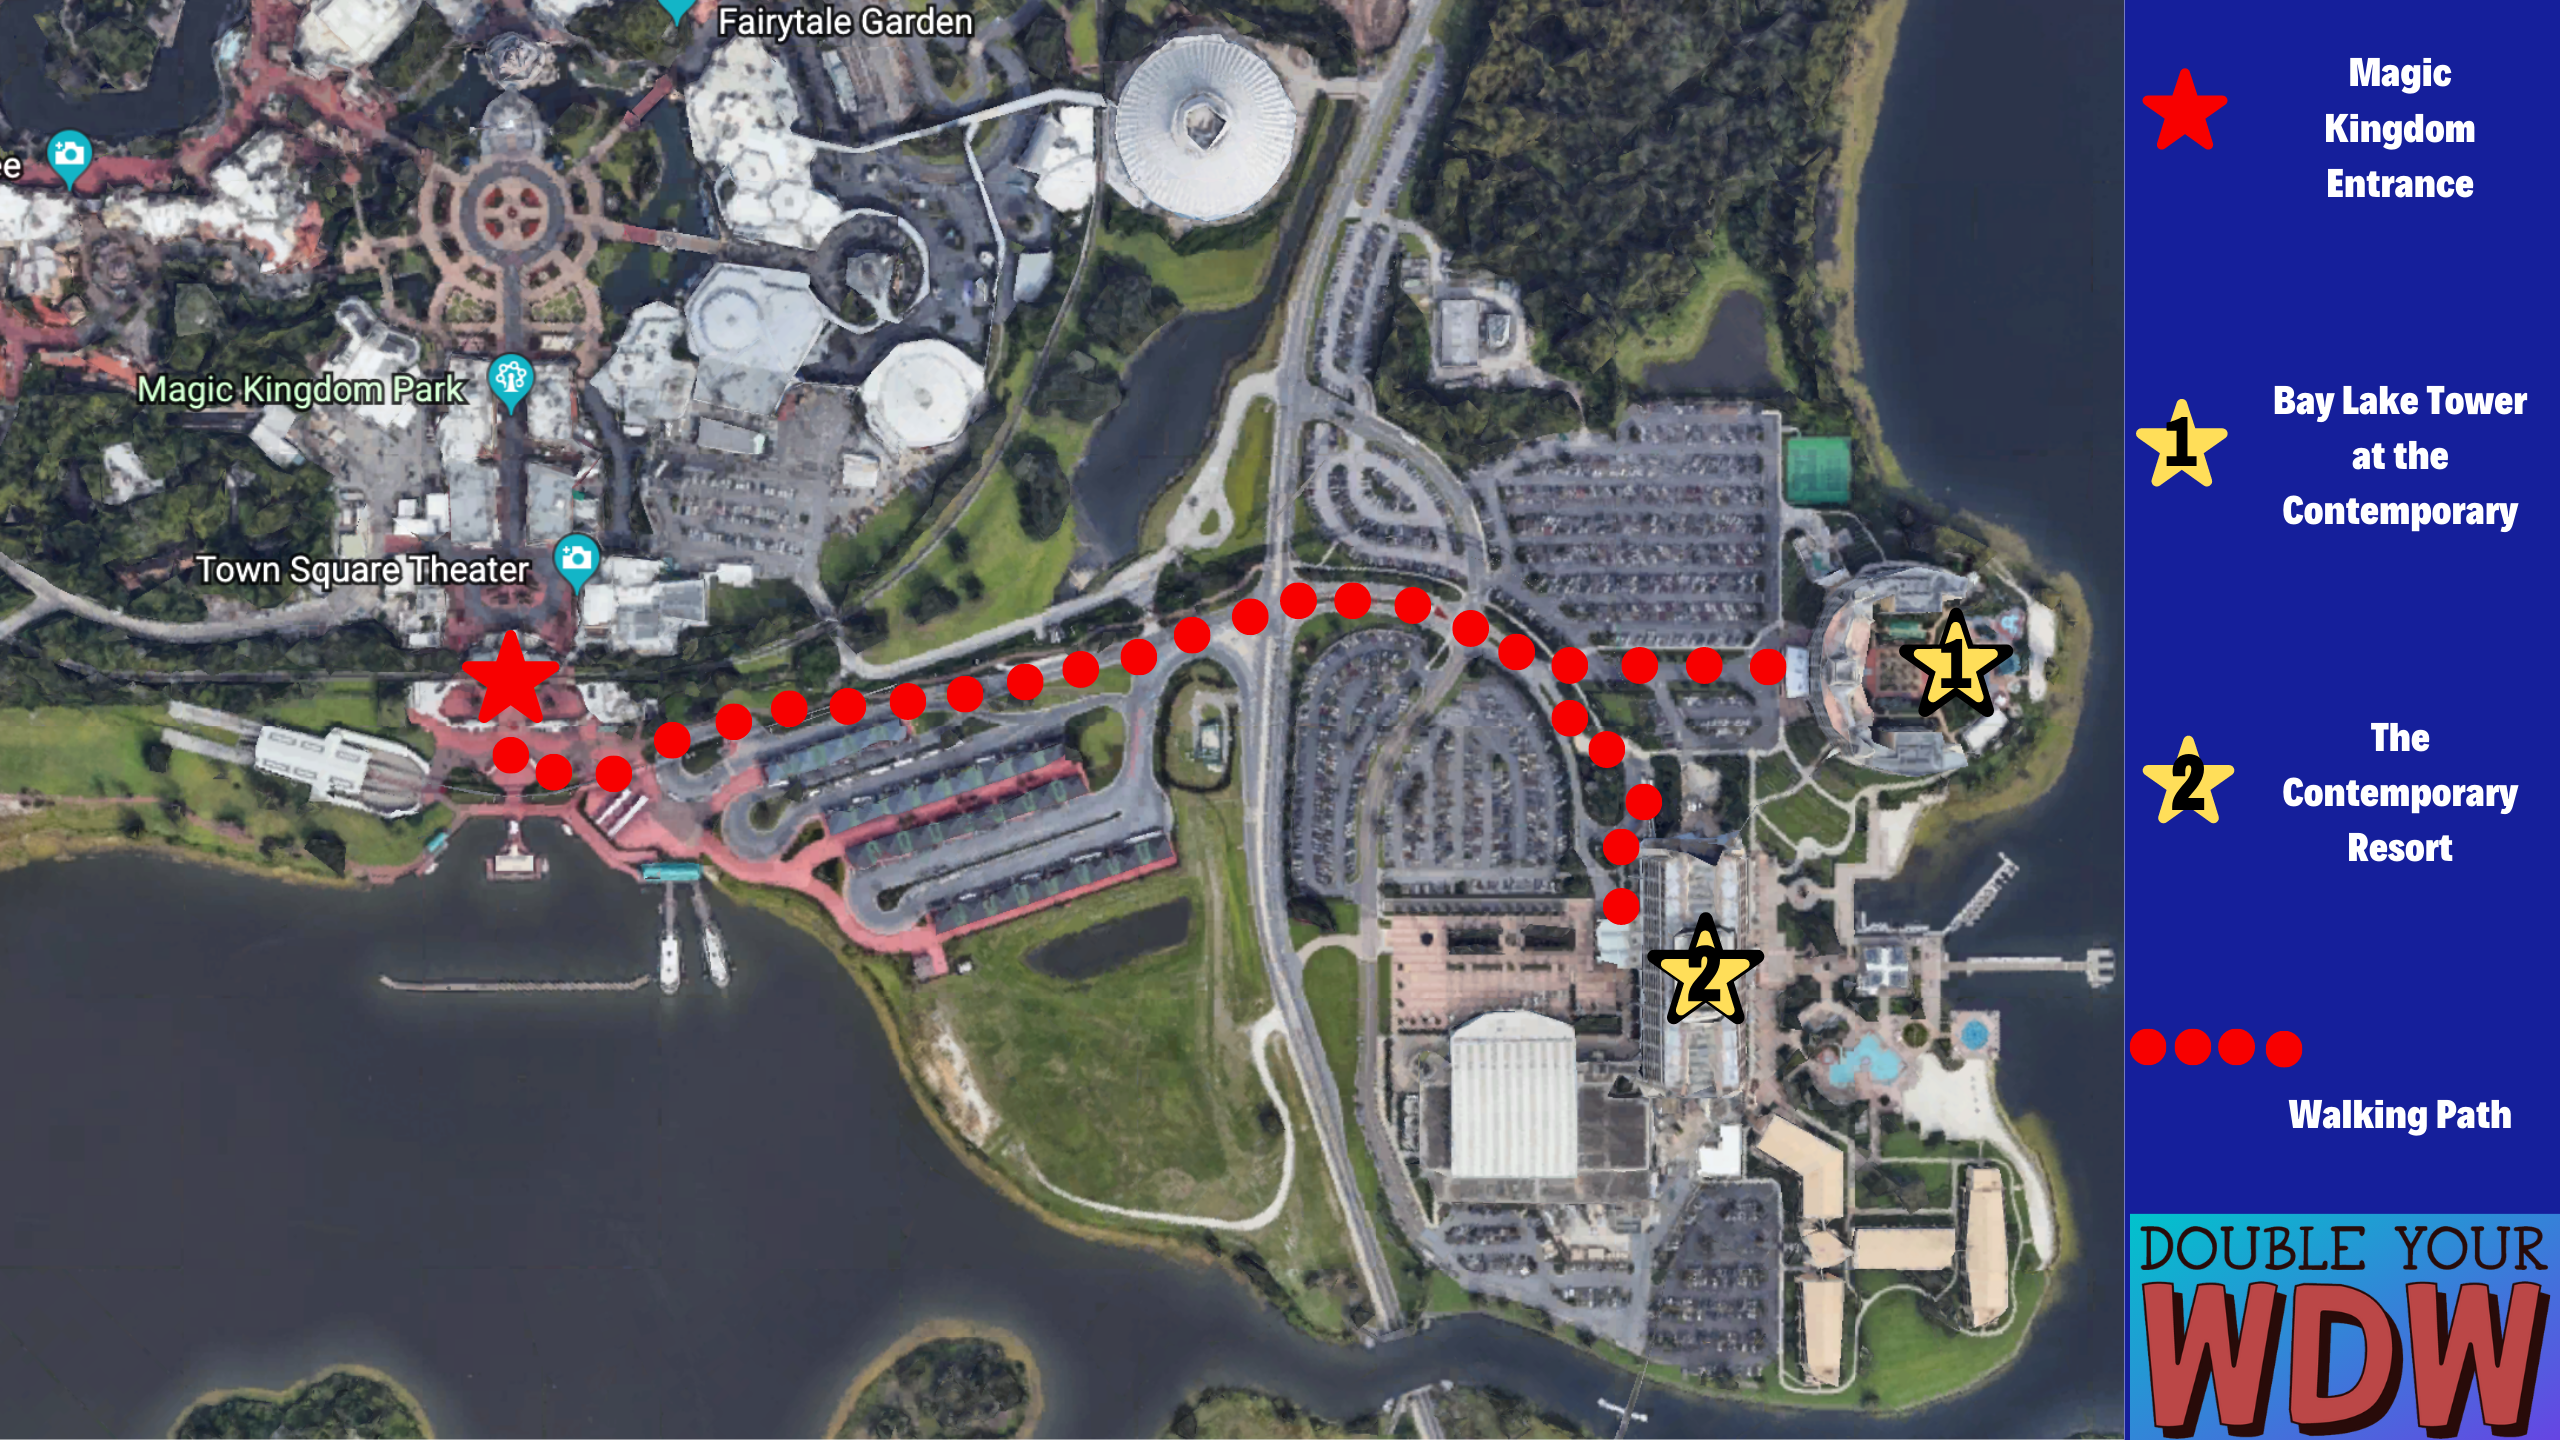 Contemporary and Bay Lake Tower to Magic Kingdom Walking Path